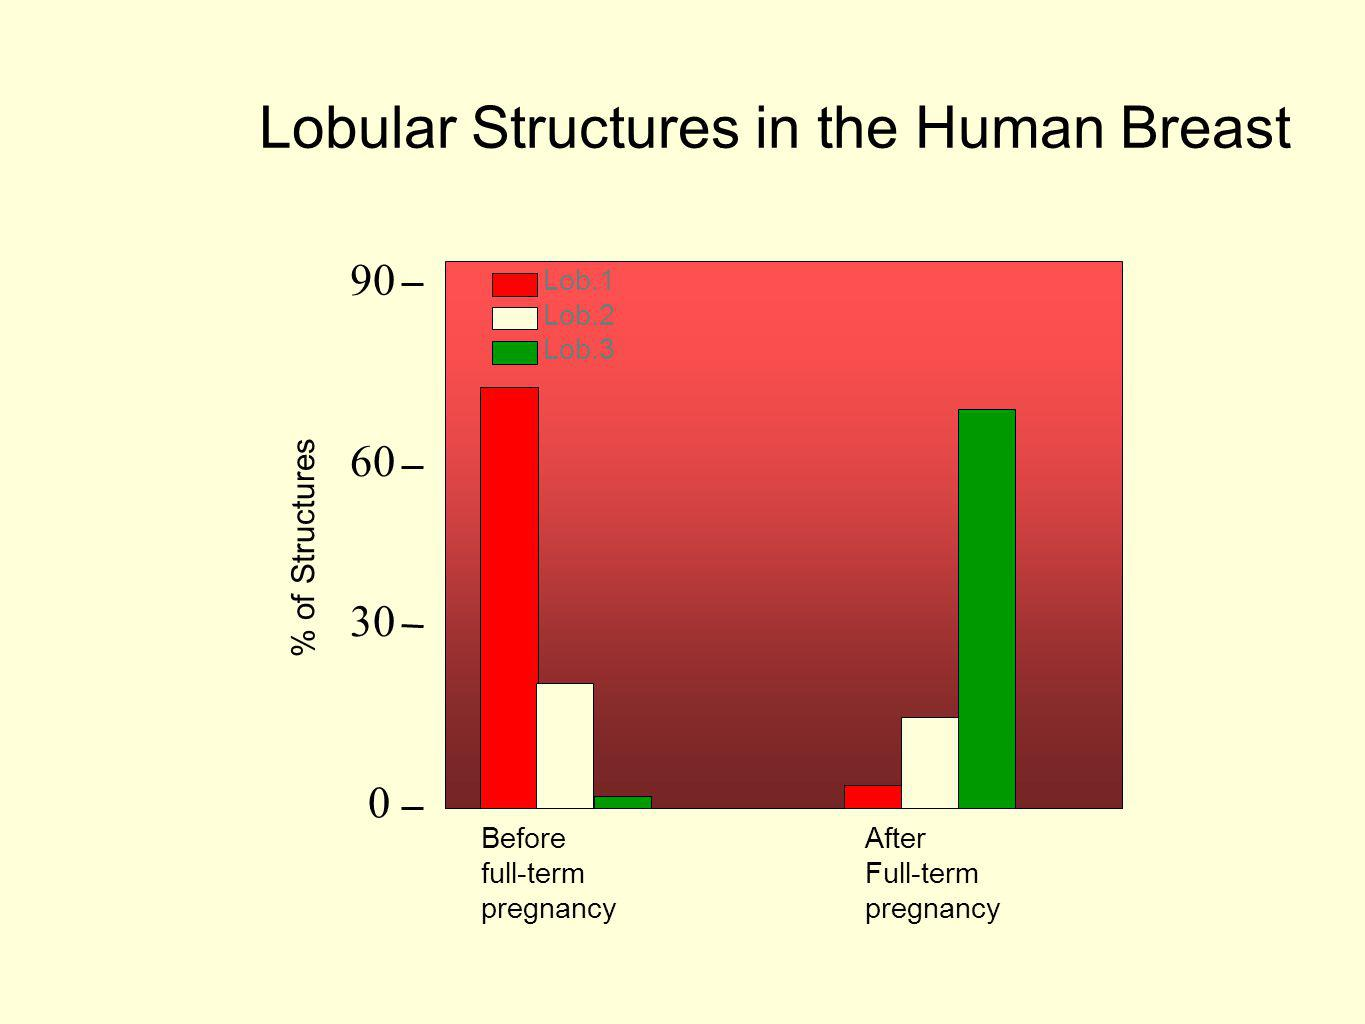 0 30 60 90 Lob.1 Lob.2 Lob.3 Lobular Structures in the Human Breast % of Structures After Full-term pregnancy Before full-term pregnancy